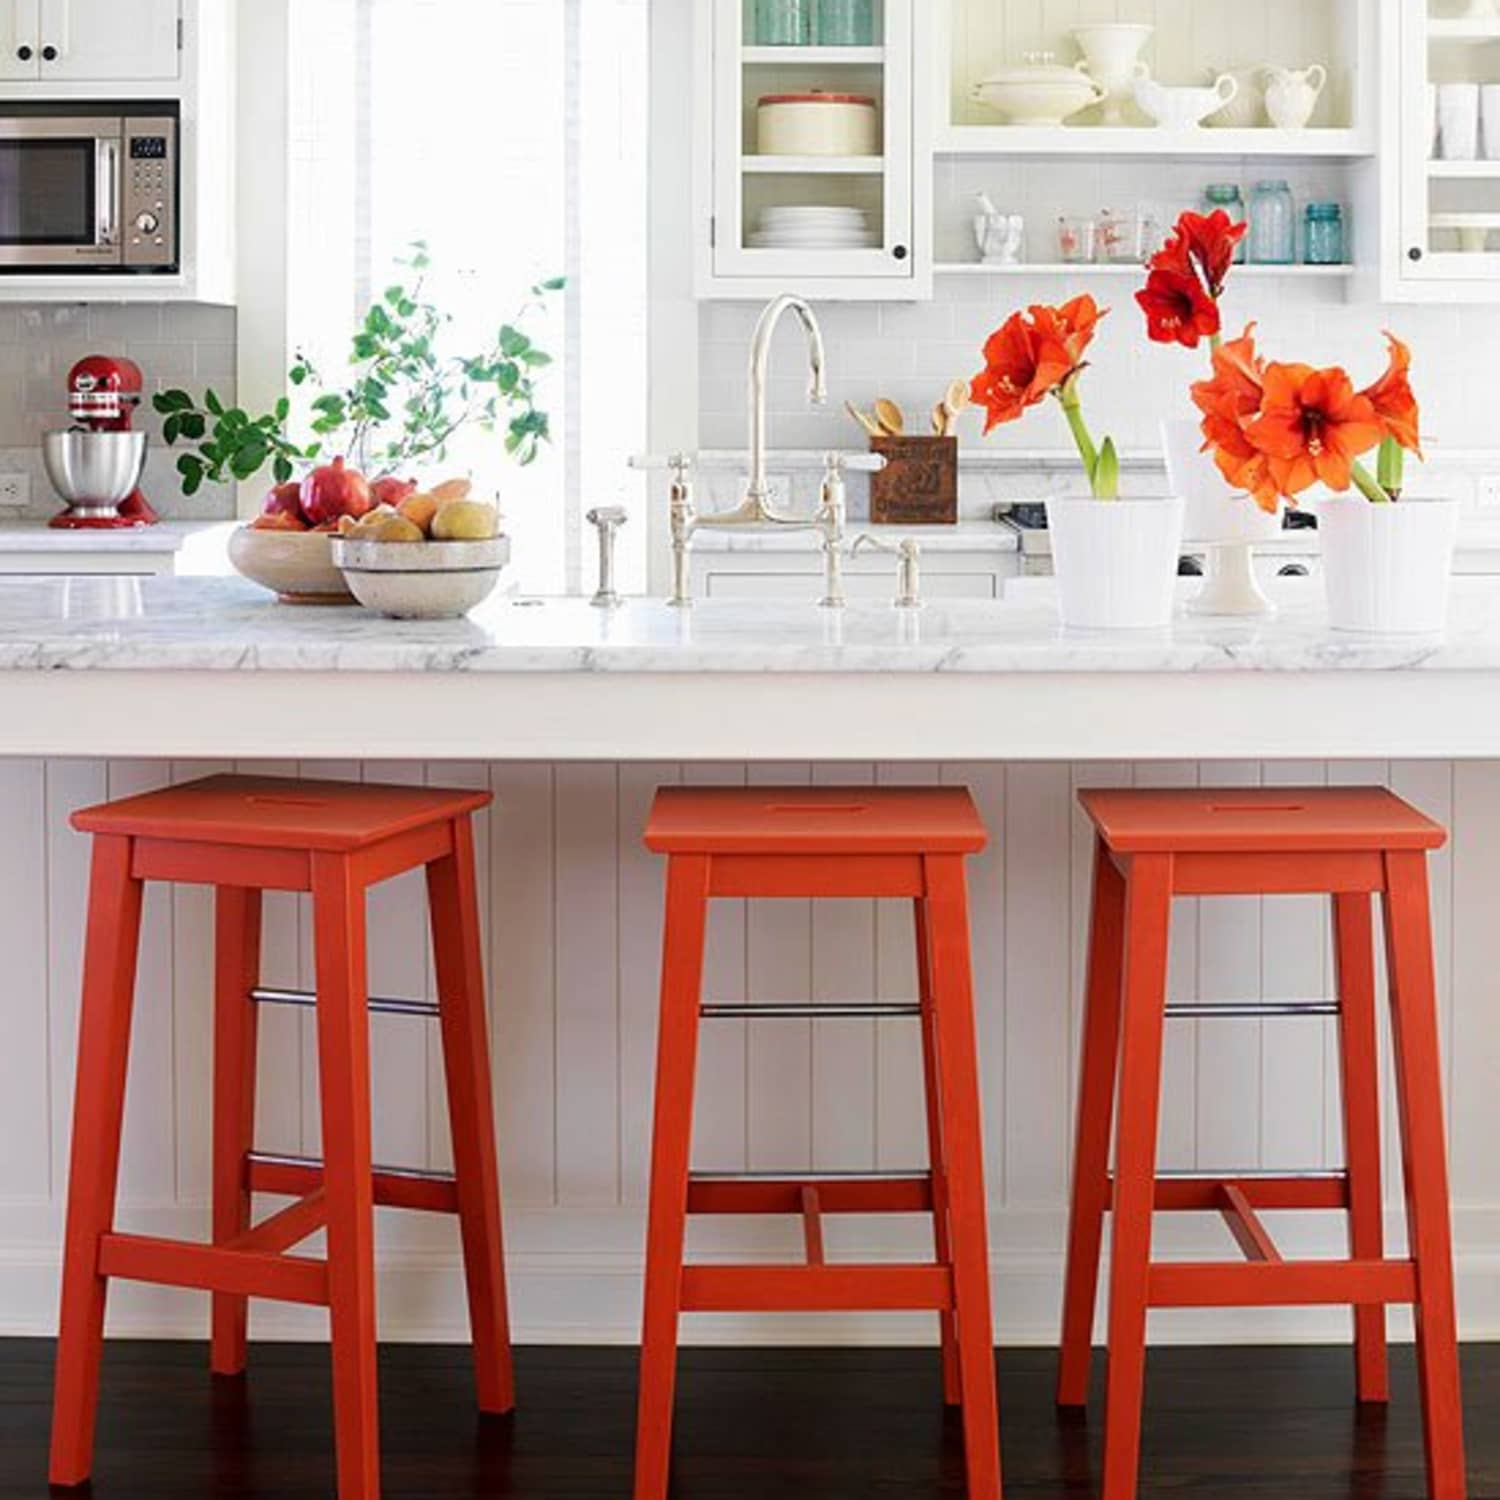 18 Ways To Use Red In The Kitchen Just A Little Bit Or A Lot Kitchn